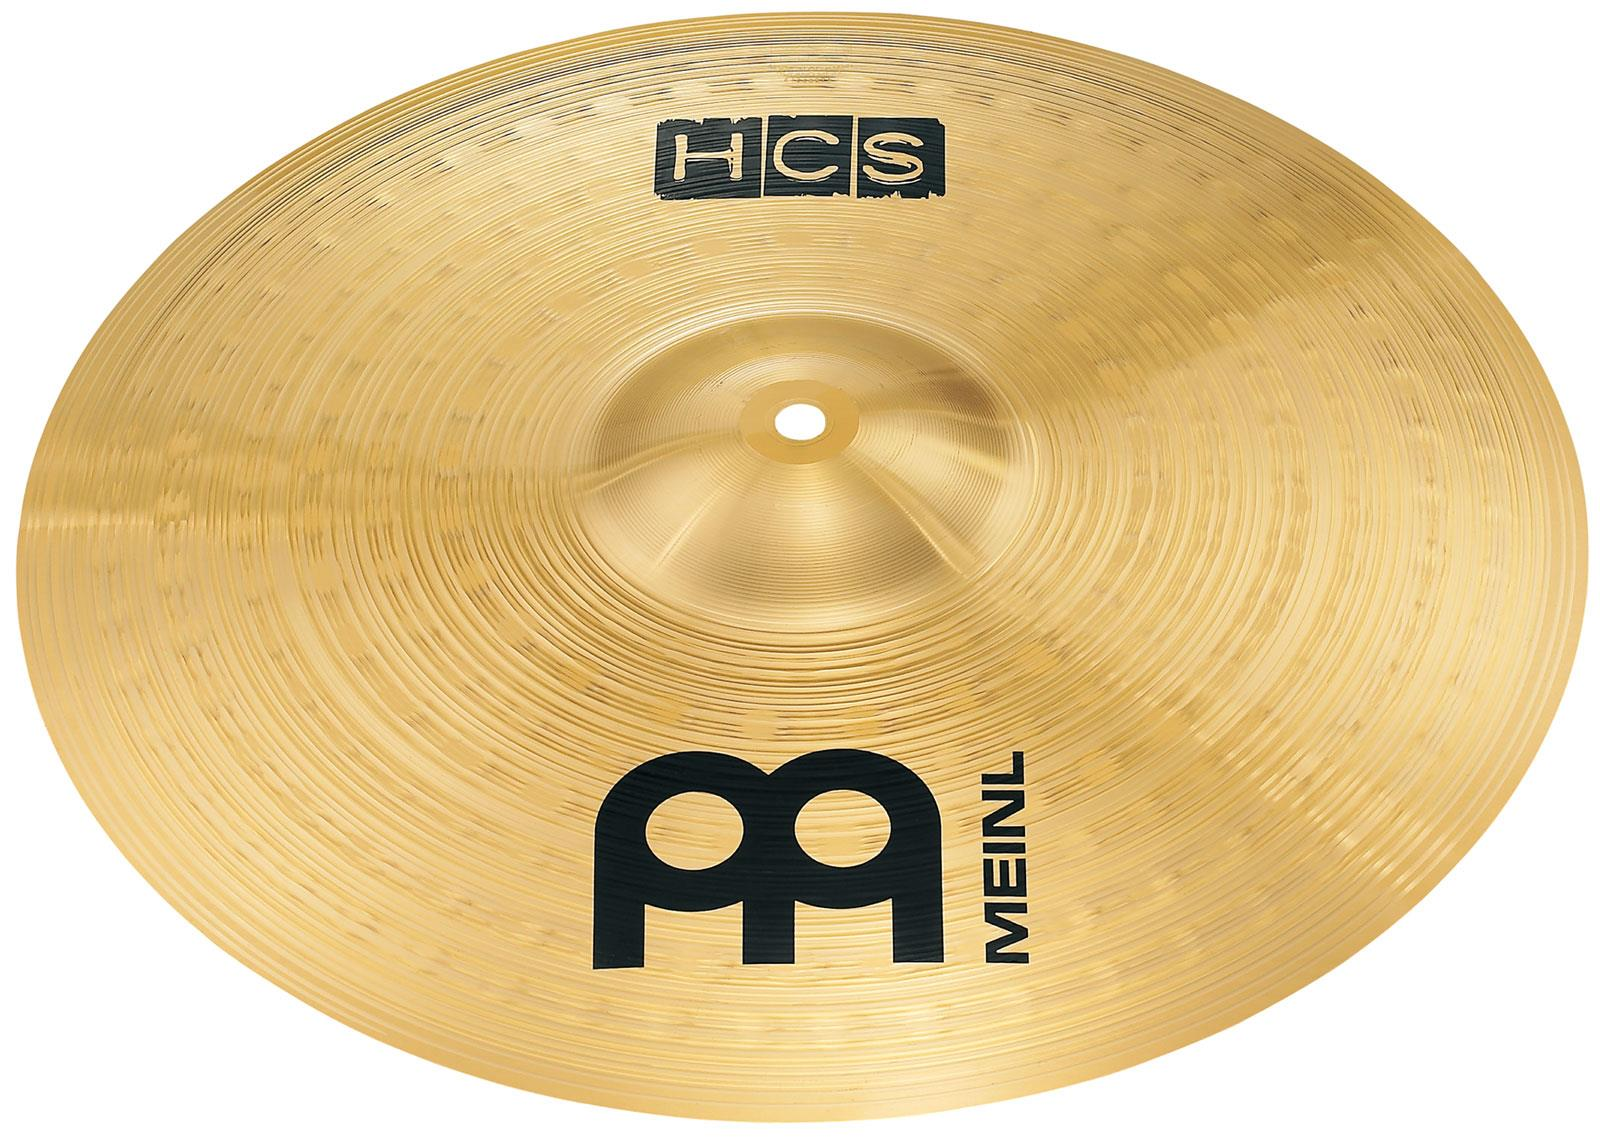 meinl hcs1416 cymbal set keymusic. Black Bedroom Furniture Sets. Home Design Ideas